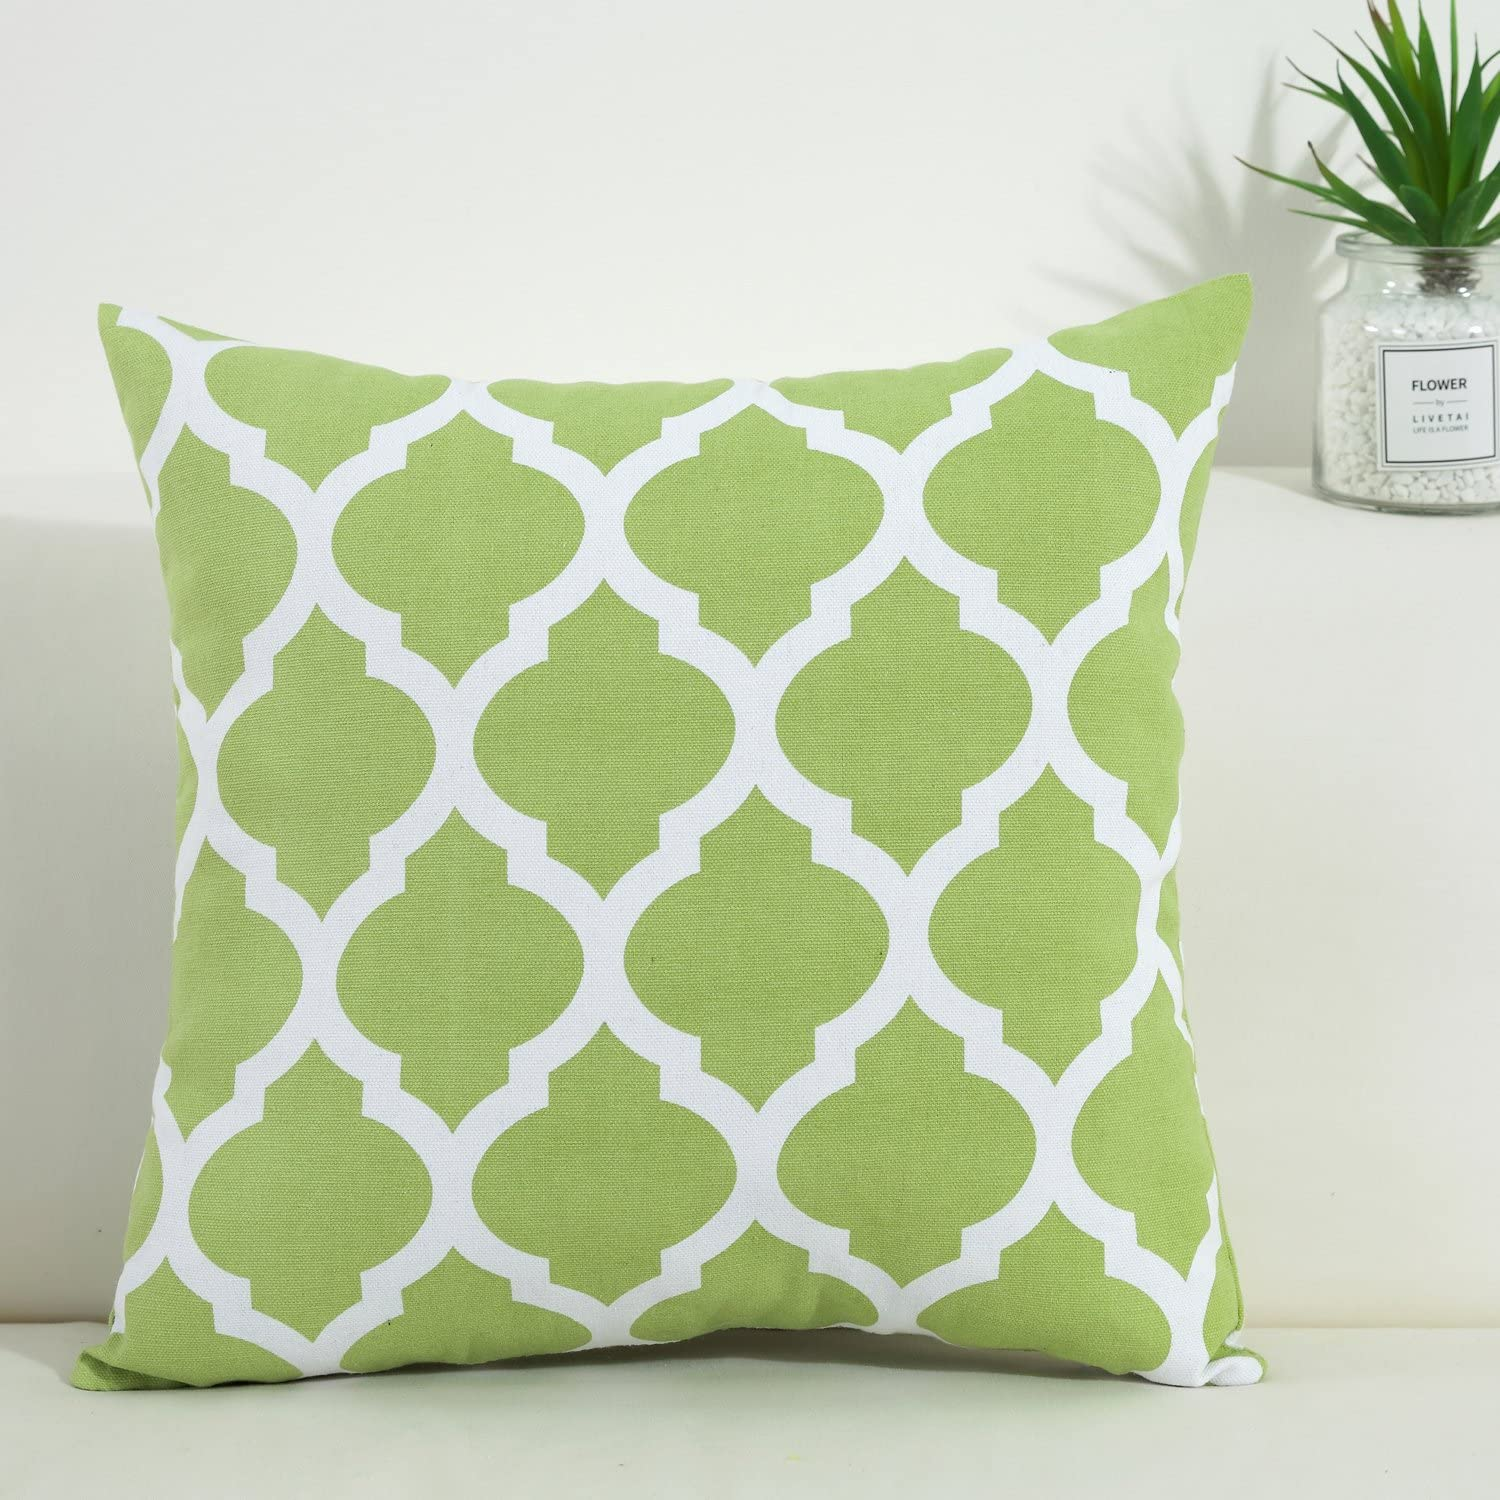 TAOSON Green and White Decorative Cushion Cover Pillow Cover Pillowcase Cotton Canvas Moroccan Quatrefoil Pattern Print Square Two Sides with Hidden Zipper Closure Only Cover 26x26 Inch 65x65cm